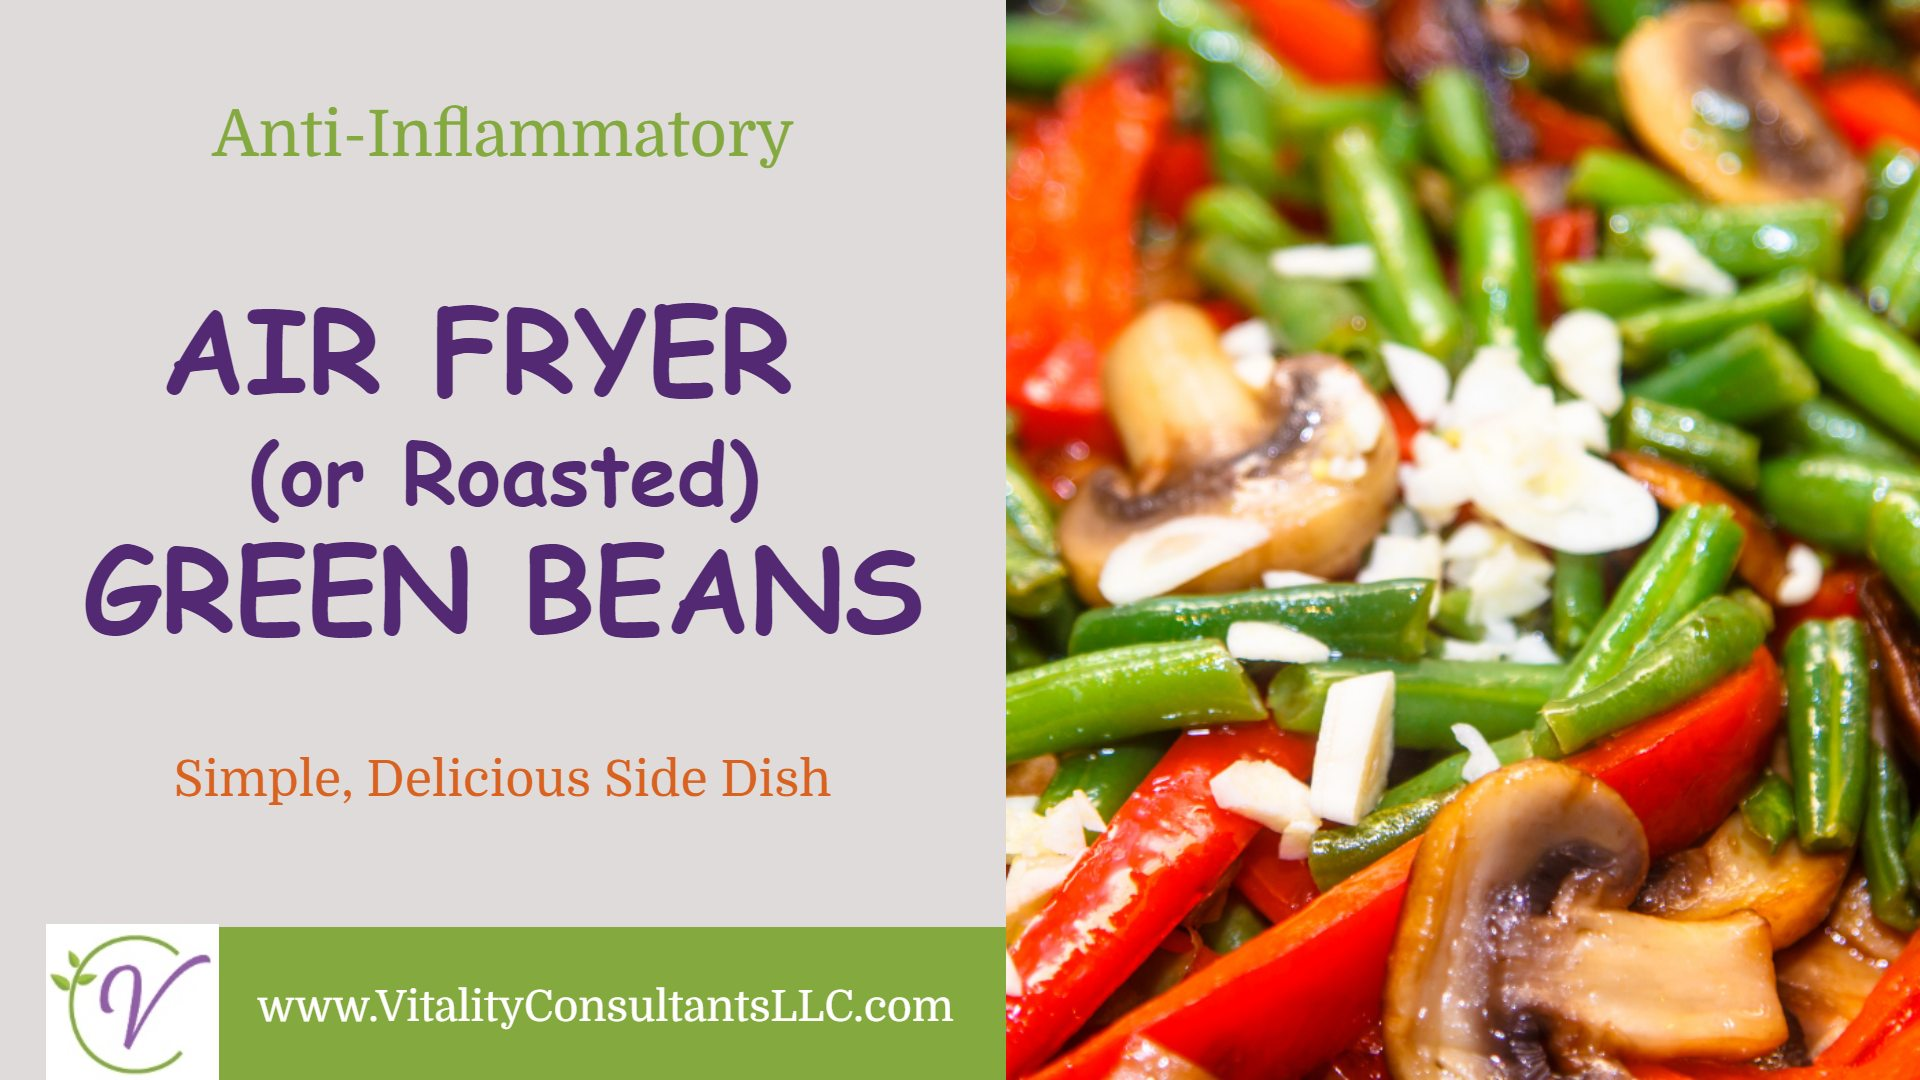 Air Fryer (or Roasted) Green Beans